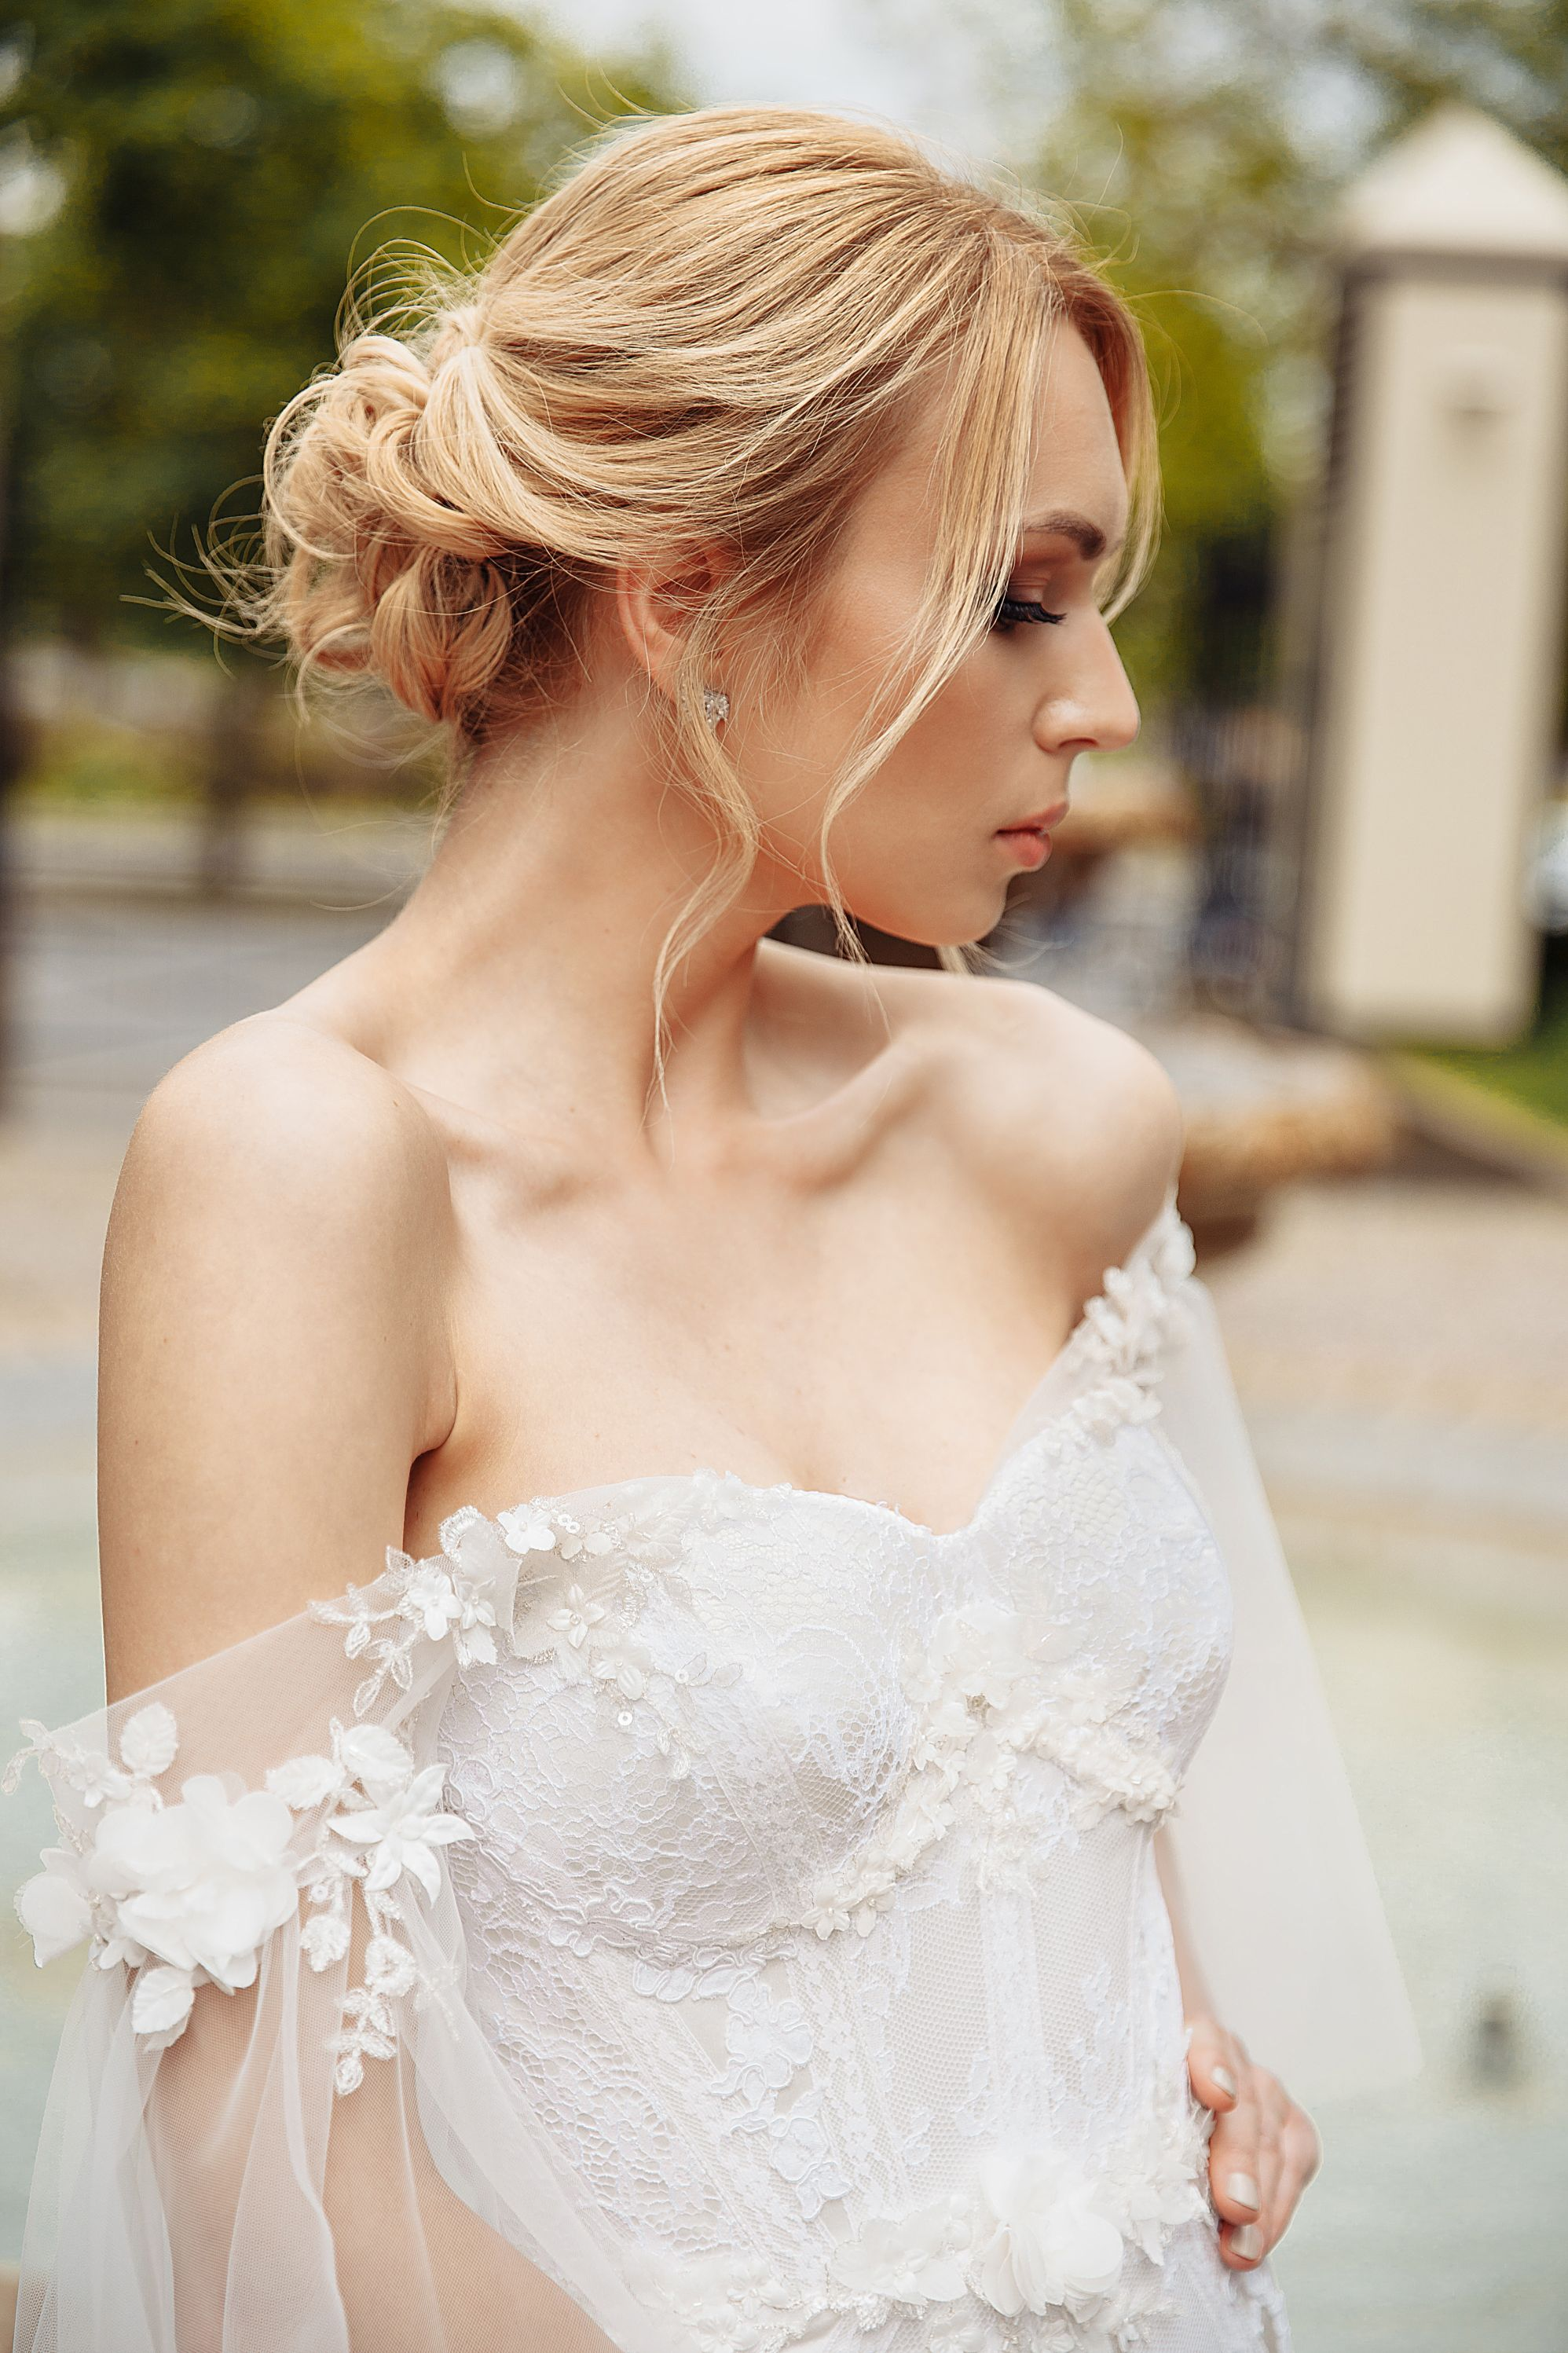 bridal boutique montreal luxury wedding gowns off the shoulder sleeves tulle and lace